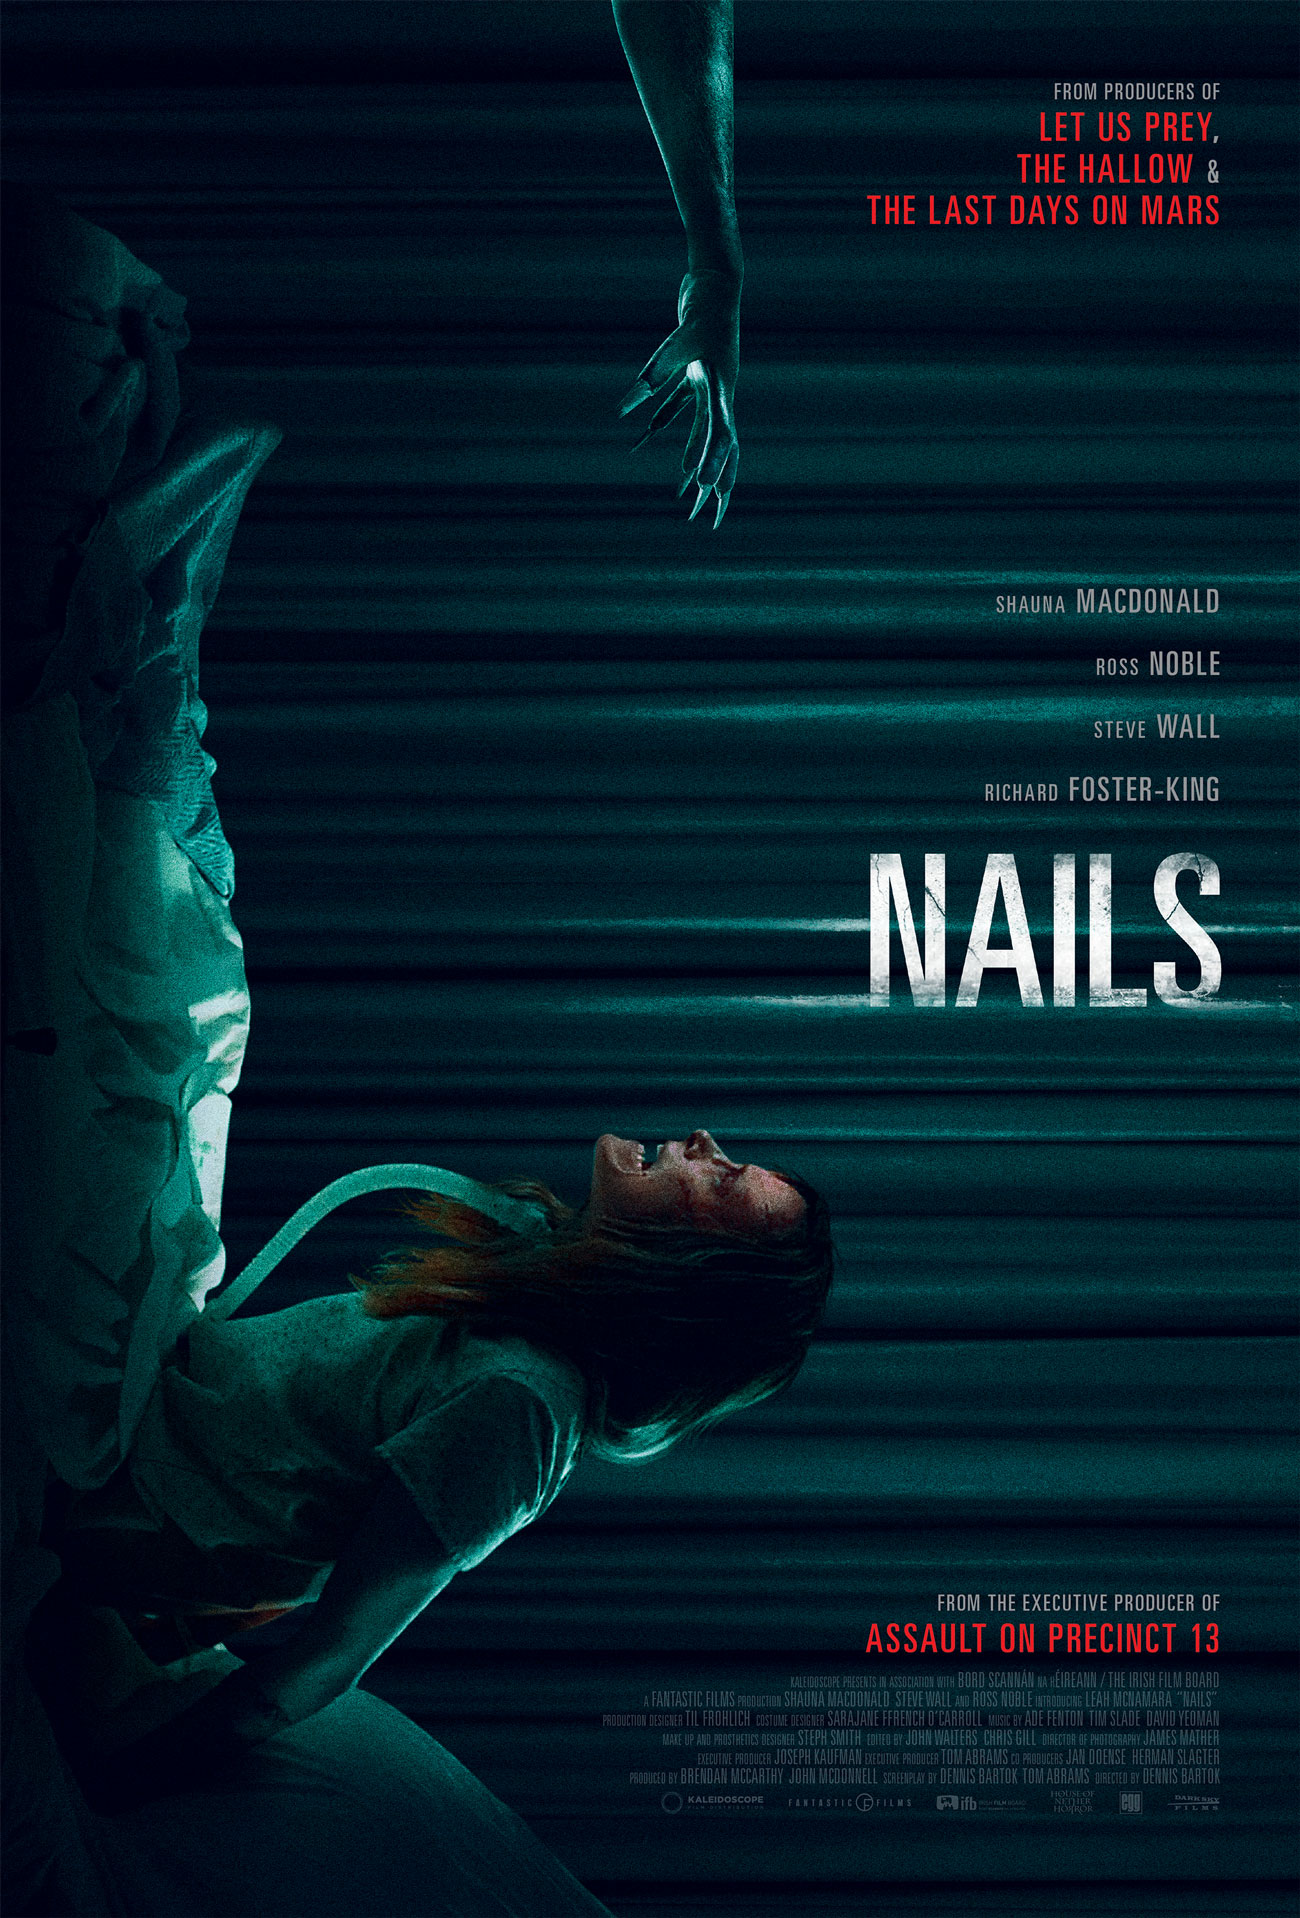 trailer and poster of nails starring